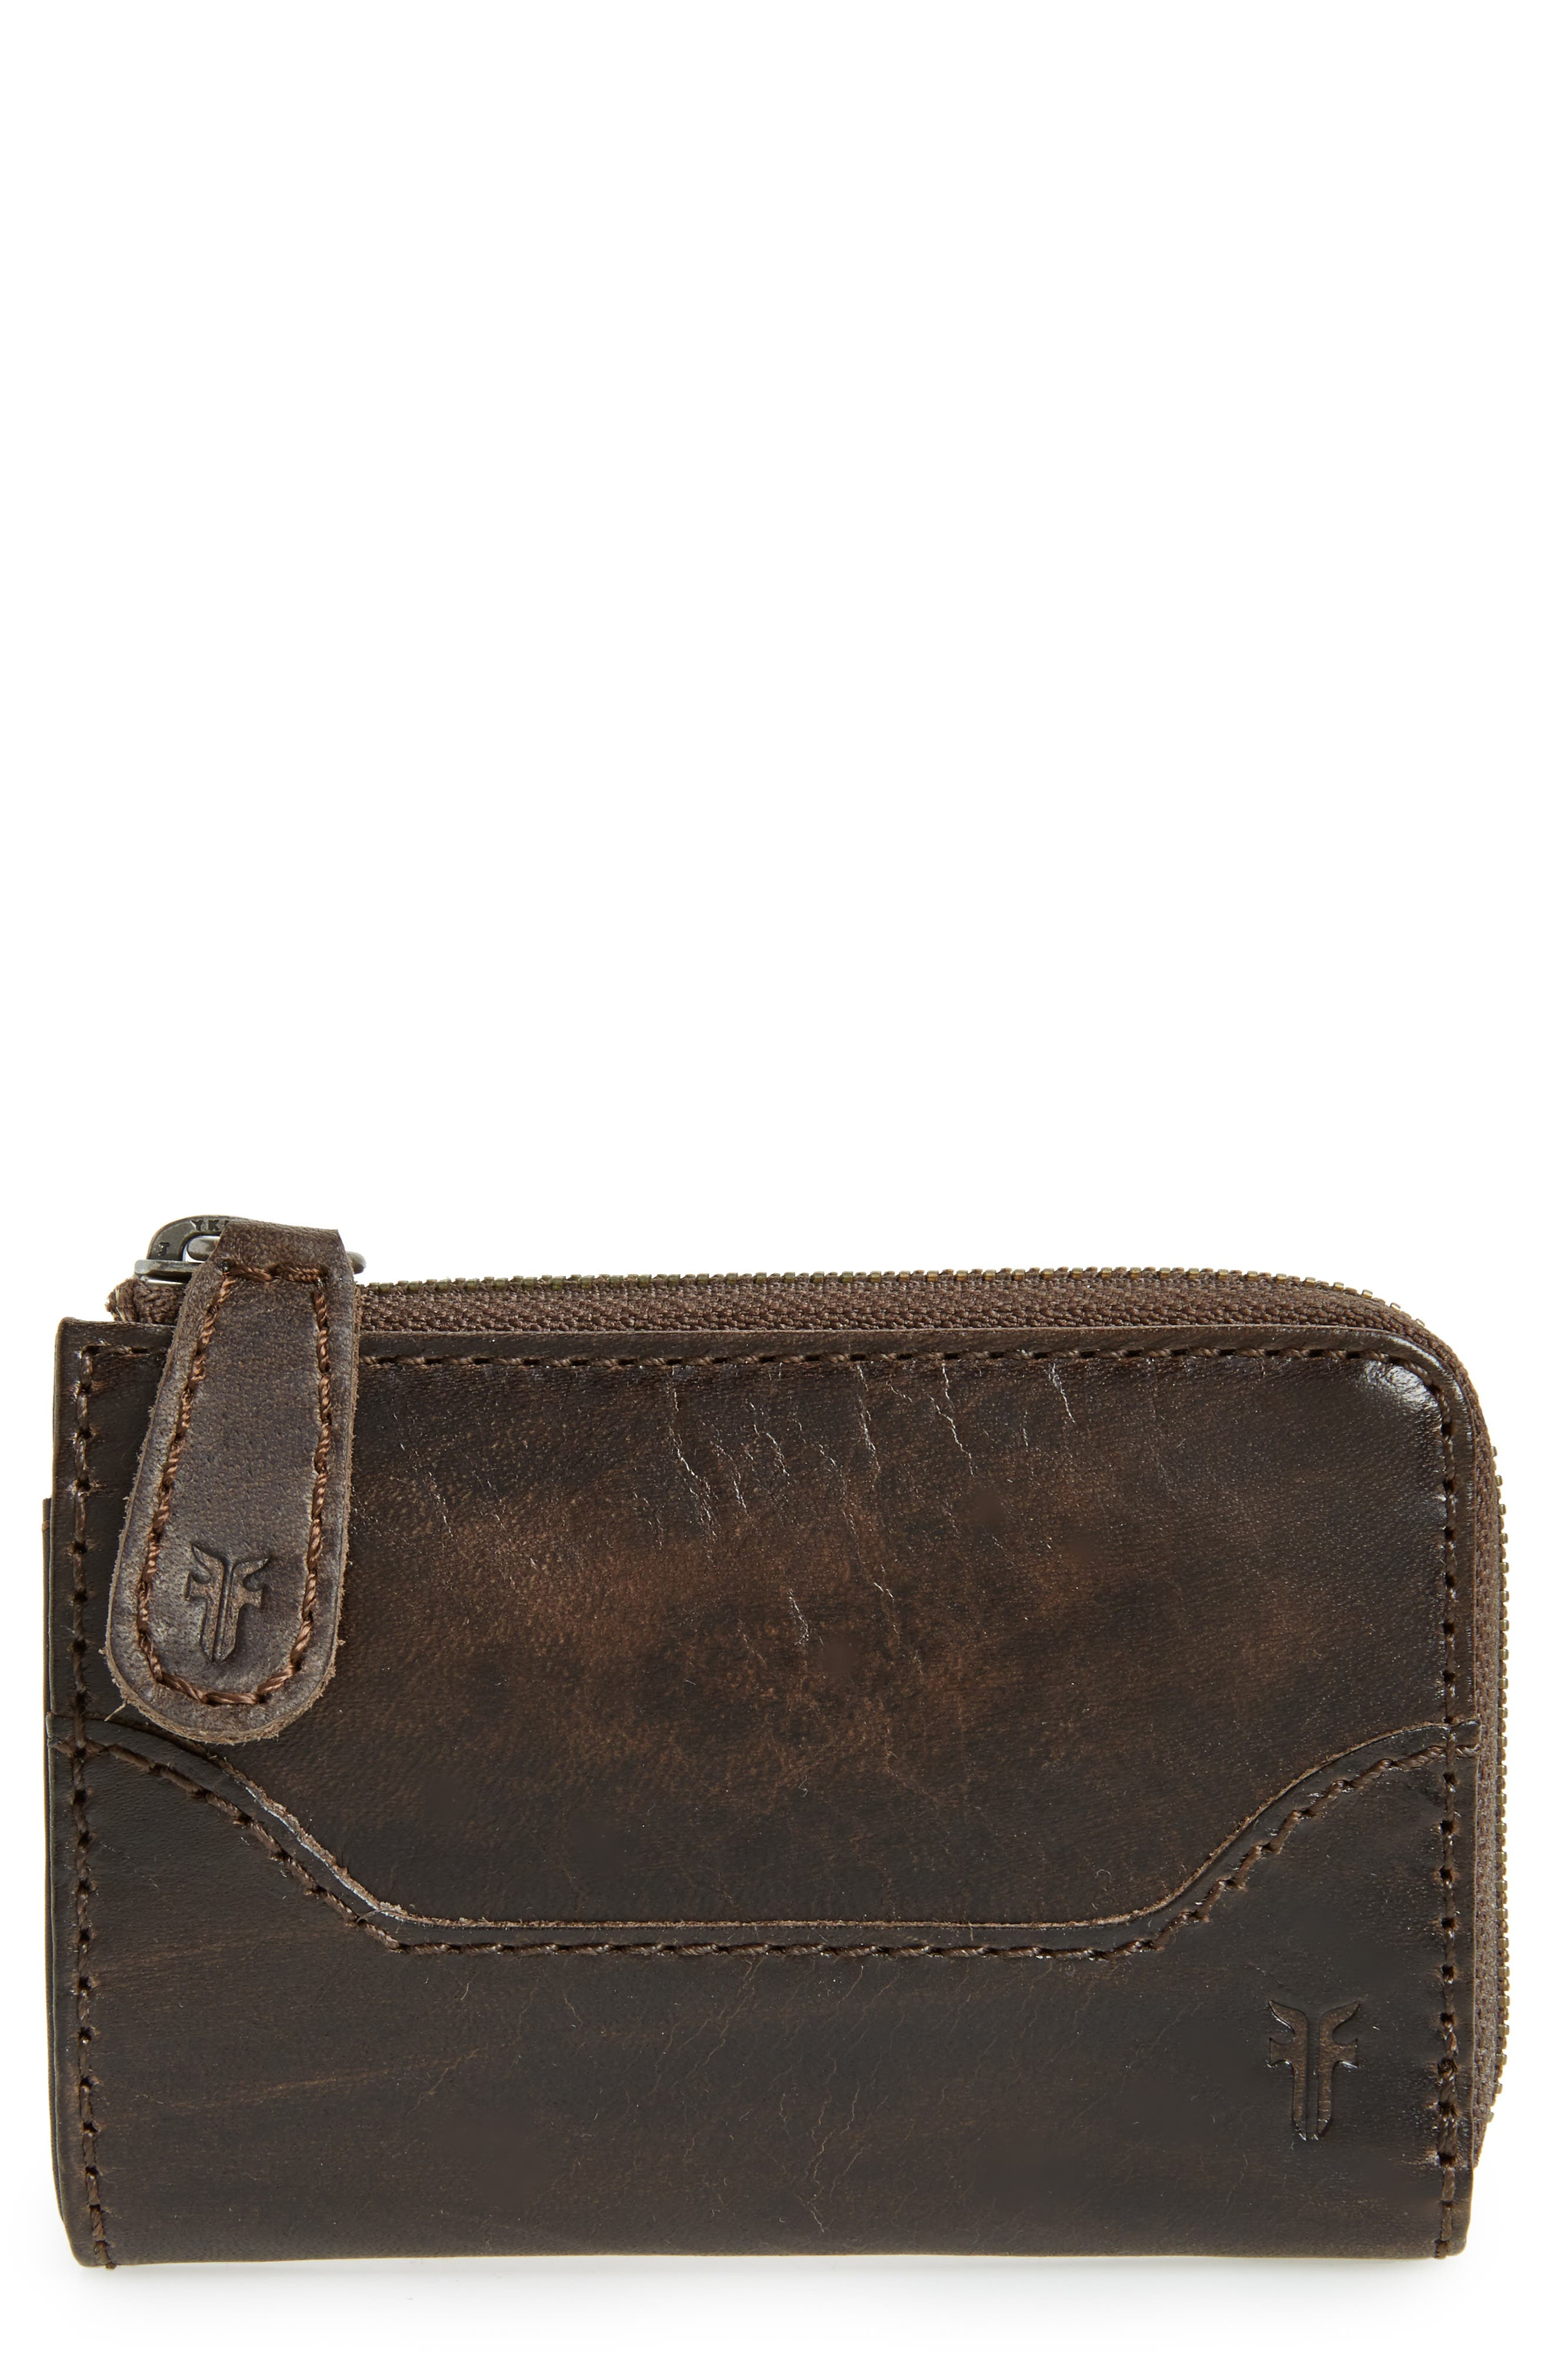 Small Melissa Leather Zip Wallet,                         Main,                         color, 203